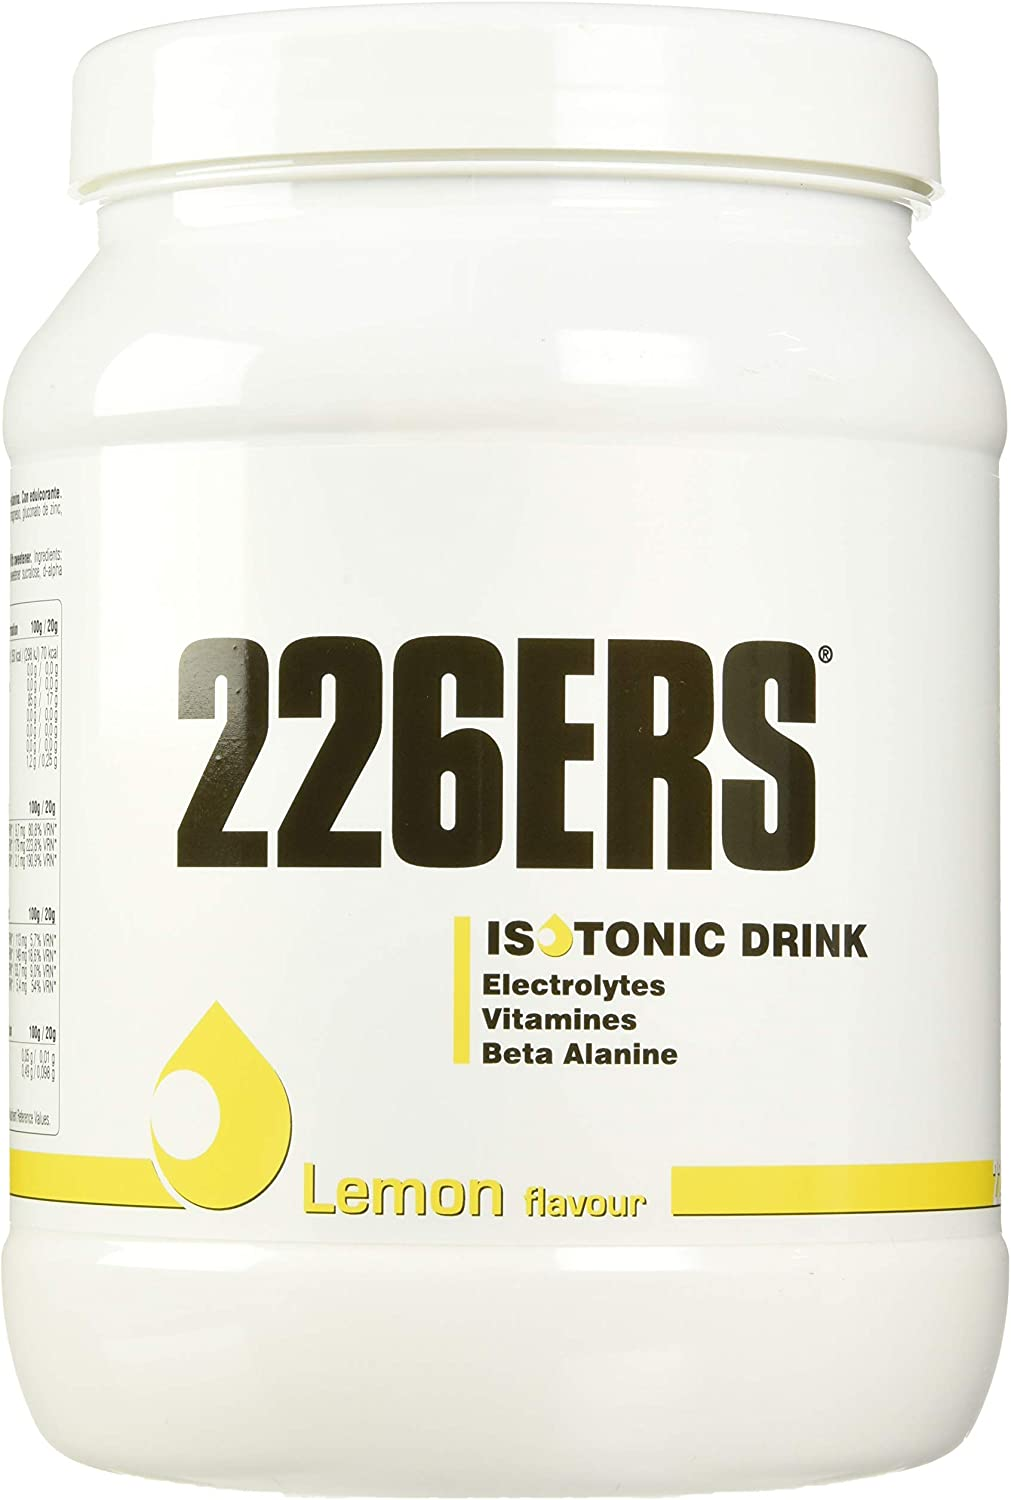 226ERS Isotonic Drink, Bedida Isotónica para Recuperar Sales Minerales, Limón - 500 gr